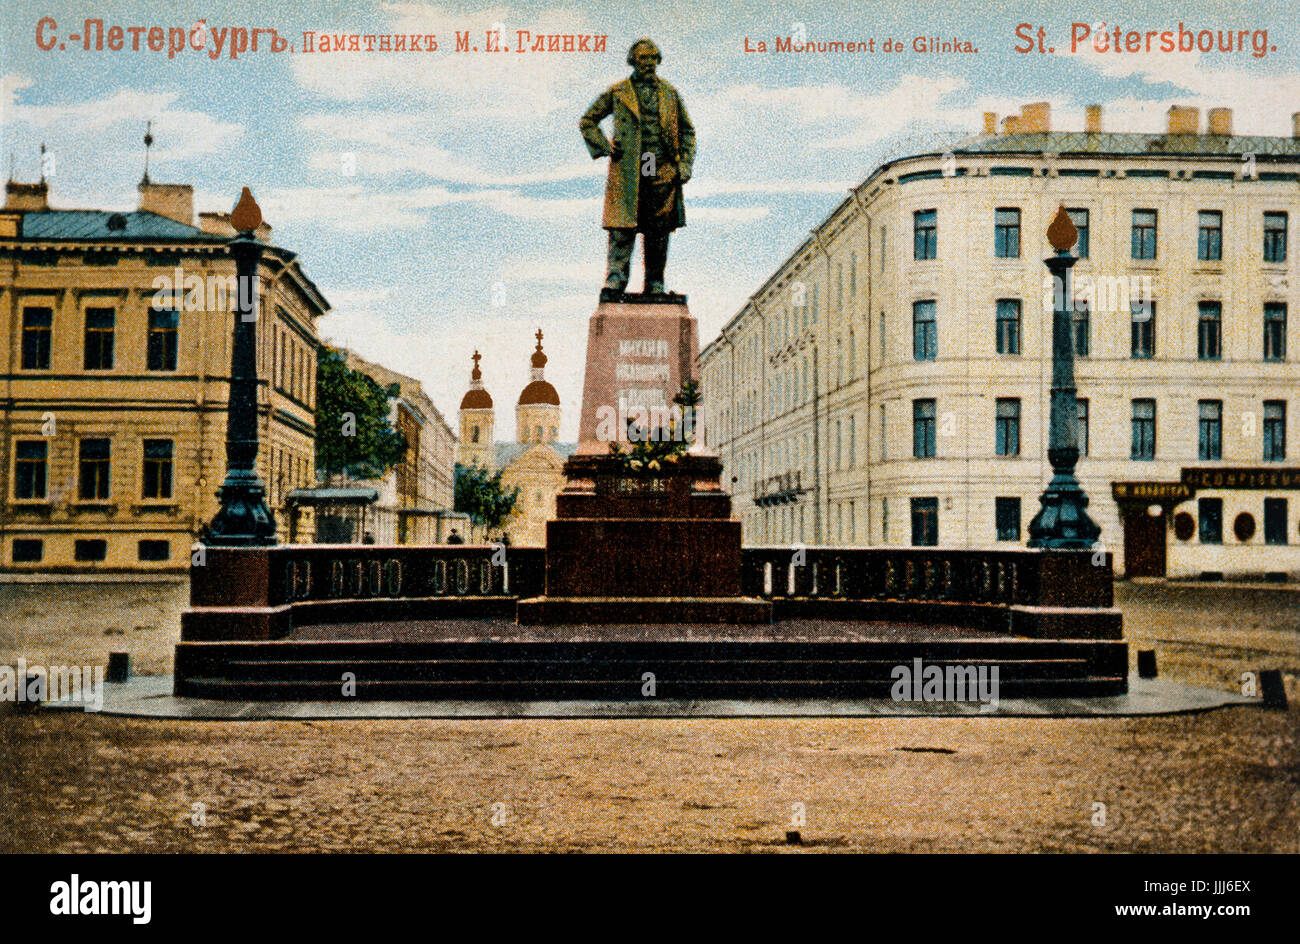 Glinka statue in St Petersburg, Russia, by Morris. - Stock Image